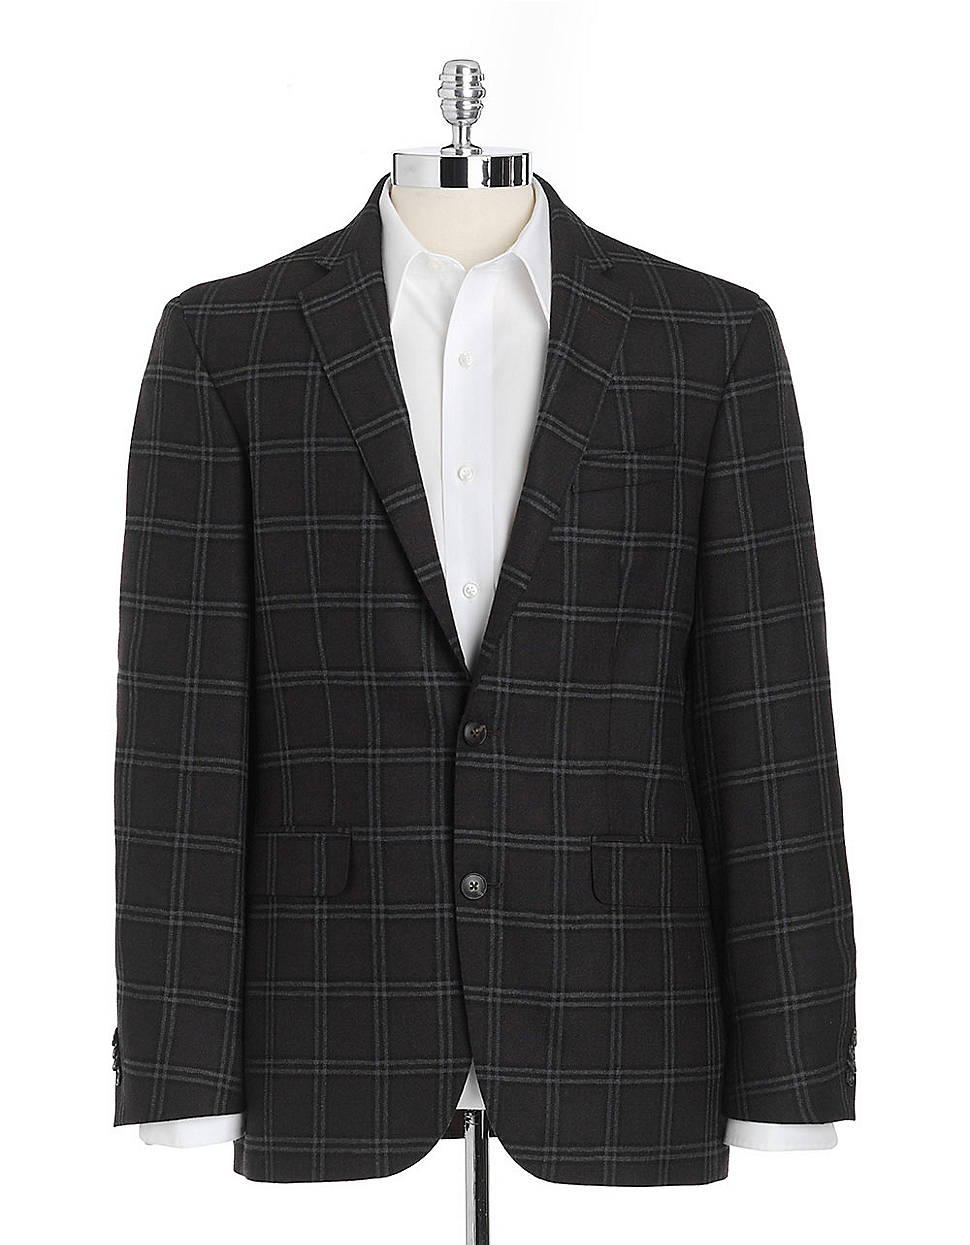 Ike Behar Plaid Wool Sport Coat In Black For Men Brown